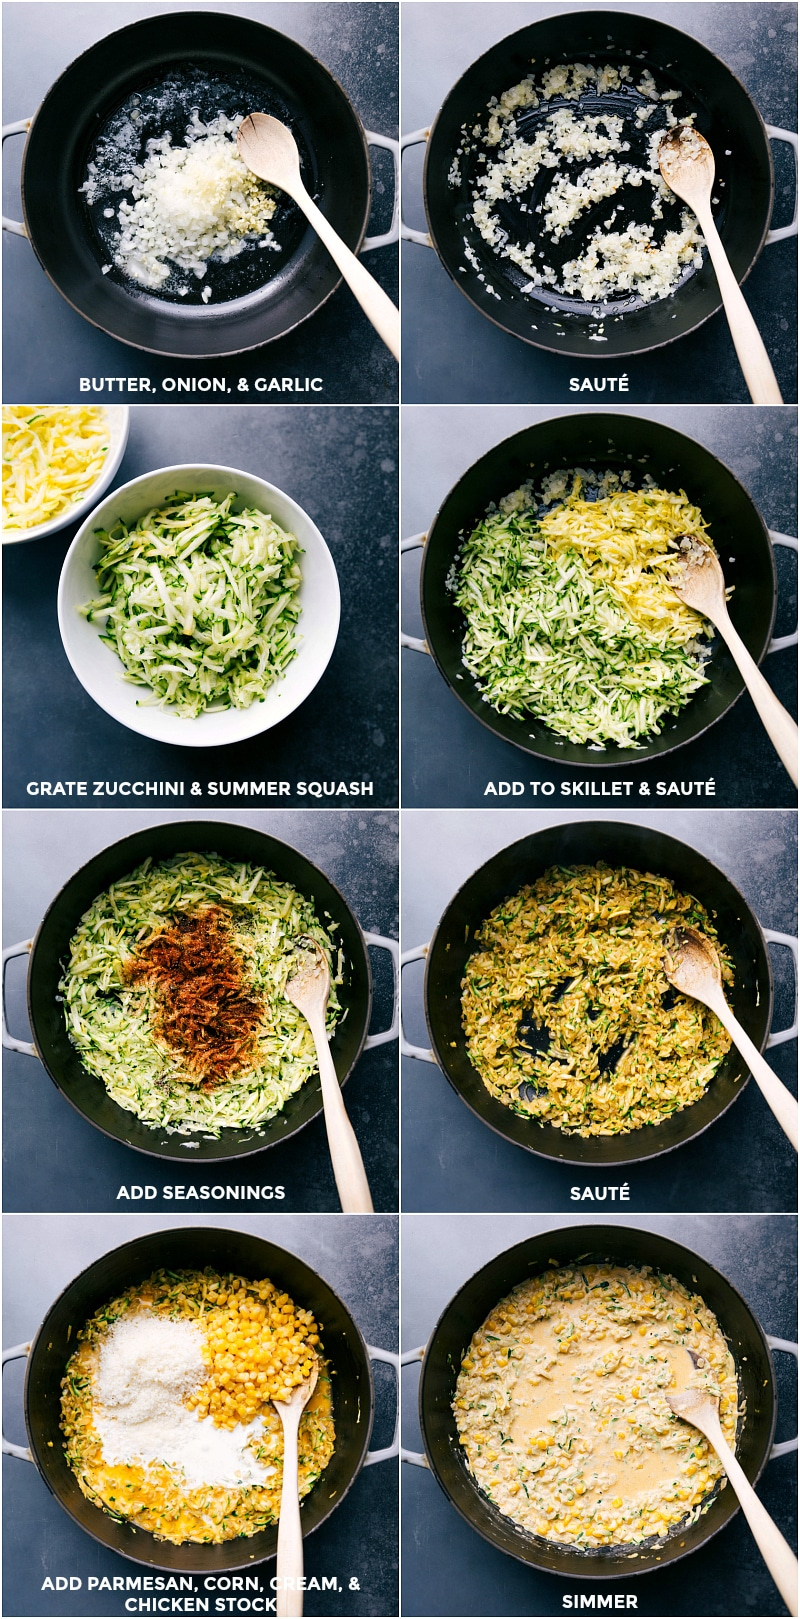 Process shots: Sauté butter, onion and garlic; grate zucchini and summer squash; add to skillet and sauté; add seasonings and sauté; add Parmesan, corn, cream and chicken broth; simmer to blend flavors.